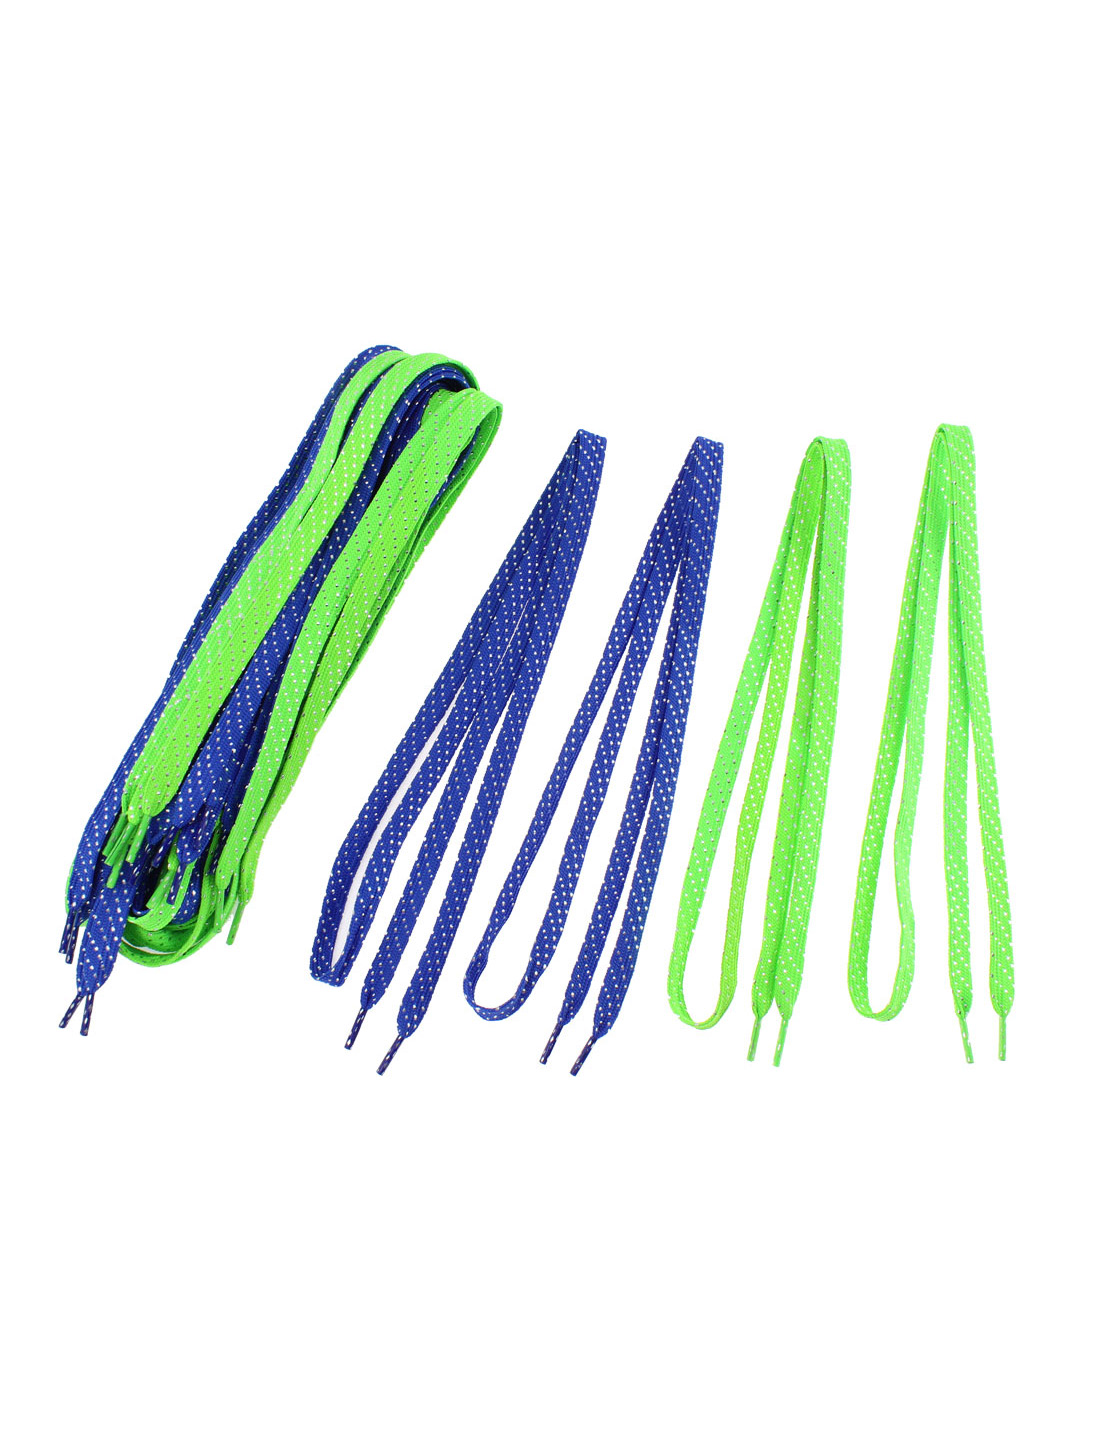 Sports Leisure Shoes Cotton Blend Flat Shoestring Shoelaces Green Blue 10 Pairs